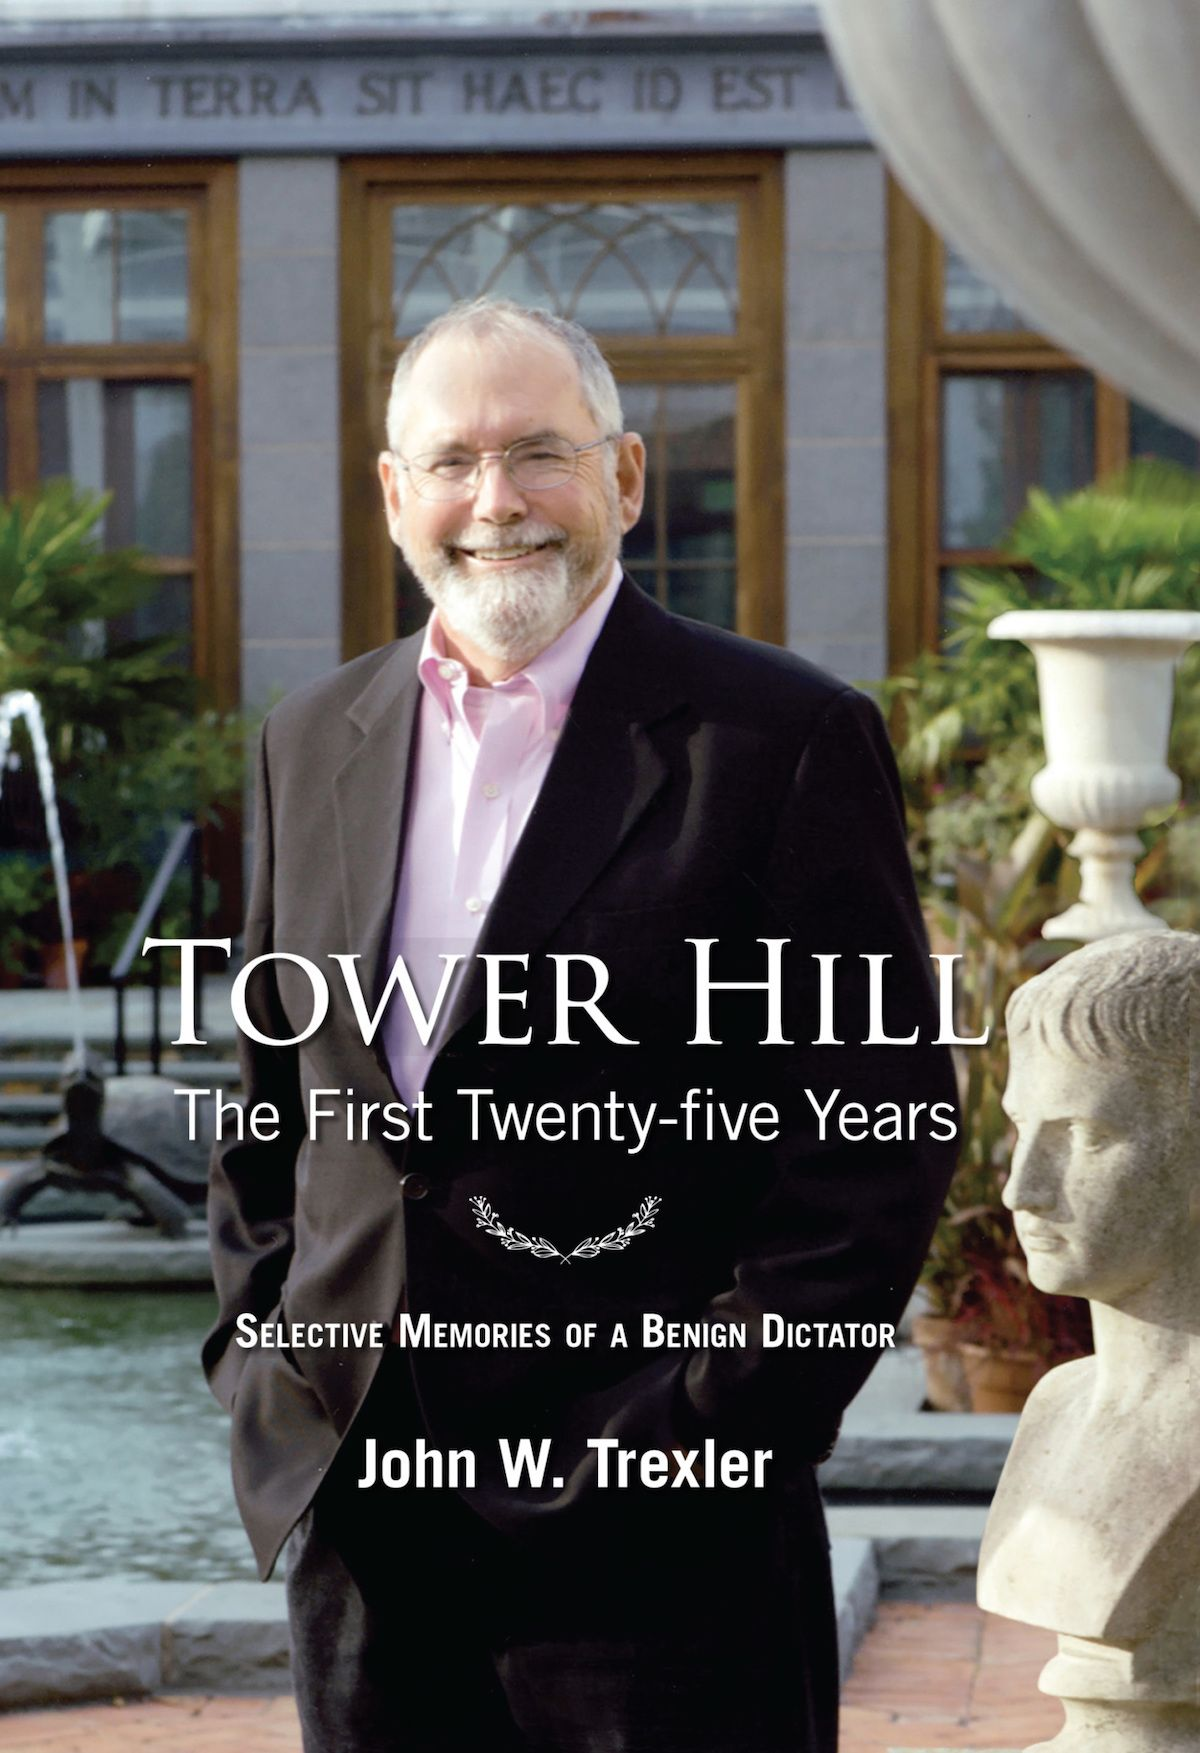 Tower Hill: The First Twenty-Five Years